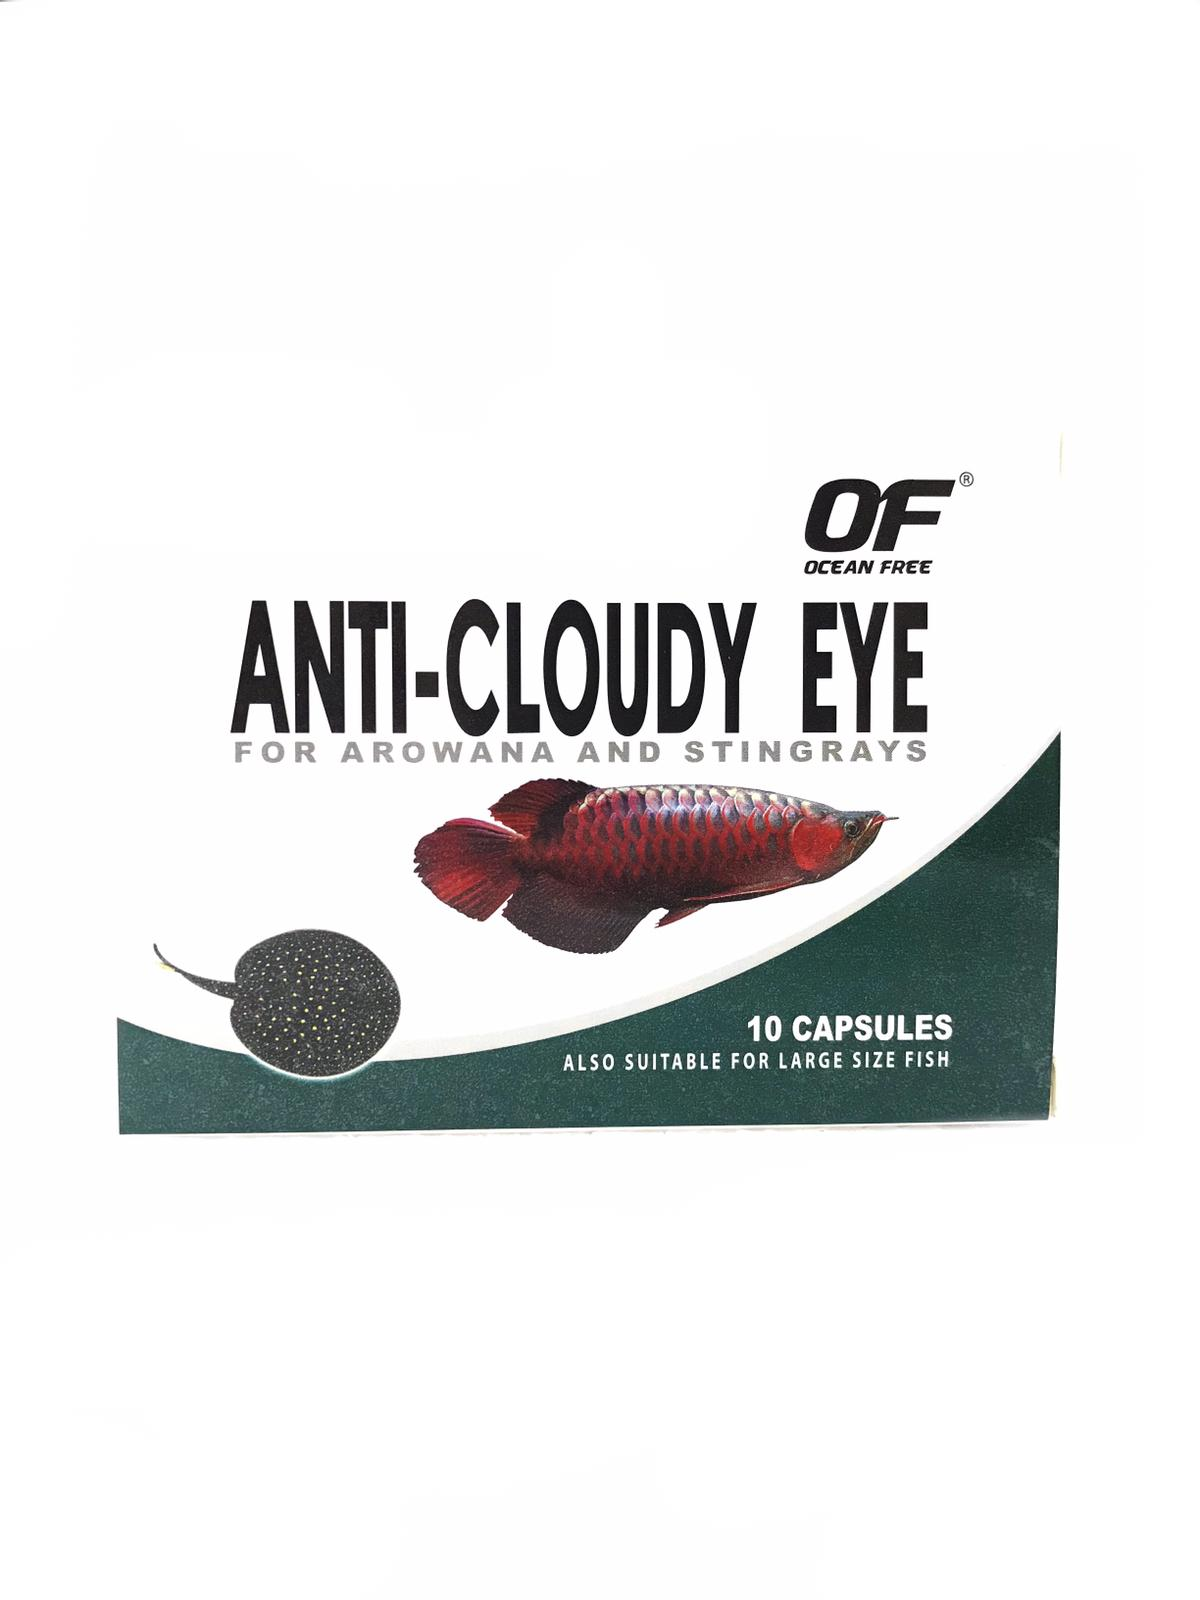 OF Anti-Cloudy Eye For Arowana And Stingray